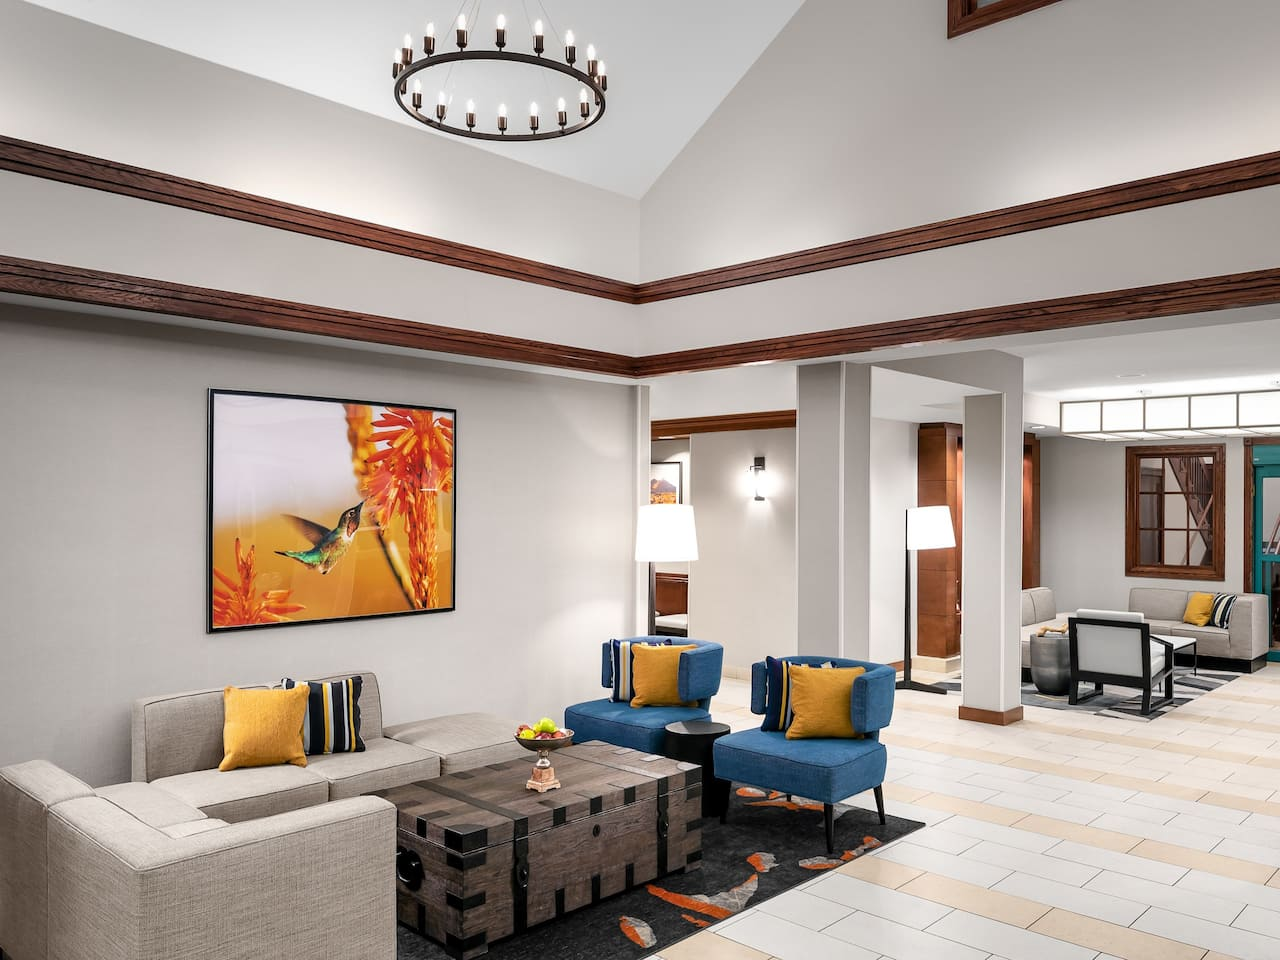 Hyatt House Scottsdale Old Town Lobby Lounge